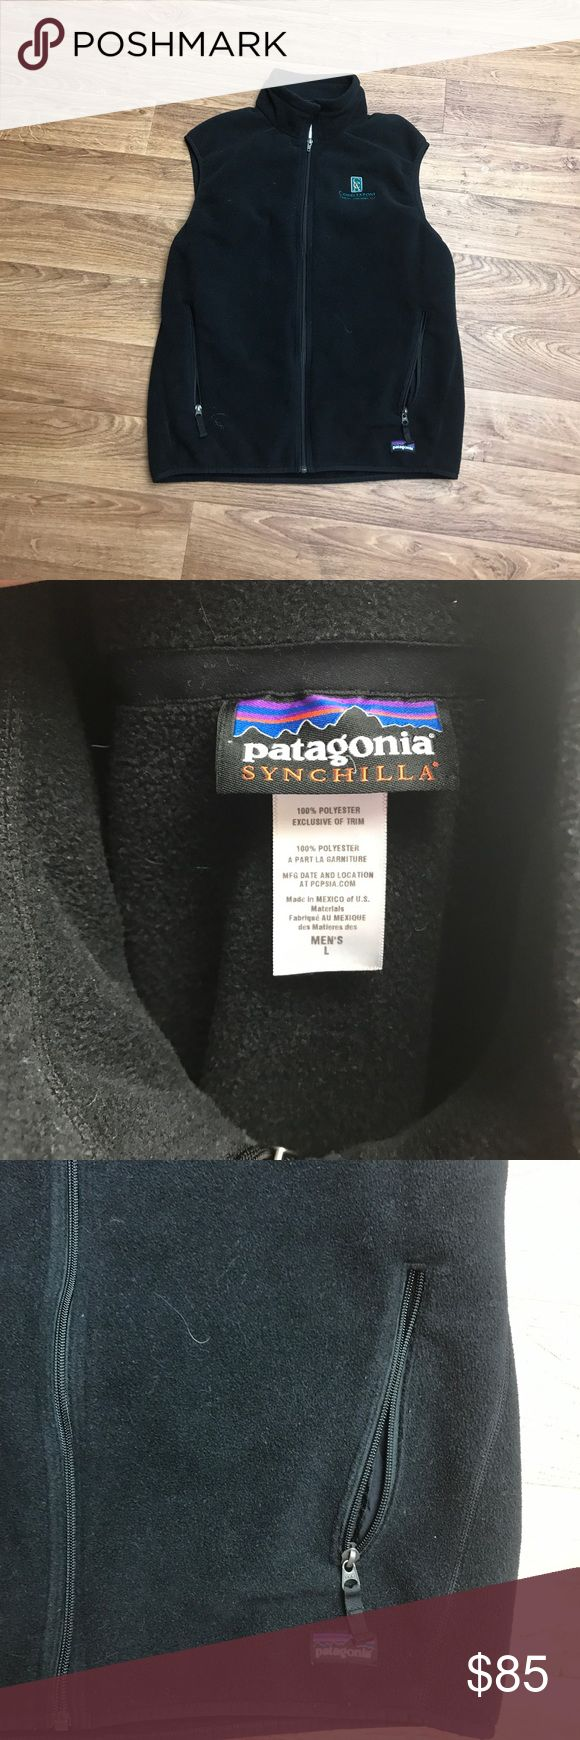 Men's Synchilla Patagonia Vest Large Great vest. Husband got it as a gift. It's my understanding that this fleece isn't available for sale. No holes. No rips. No stains. 10/10 condition. Has company logo on it. Open to all offers!!! Taking up space in closet. Patagonia Jackets & Coats Vests